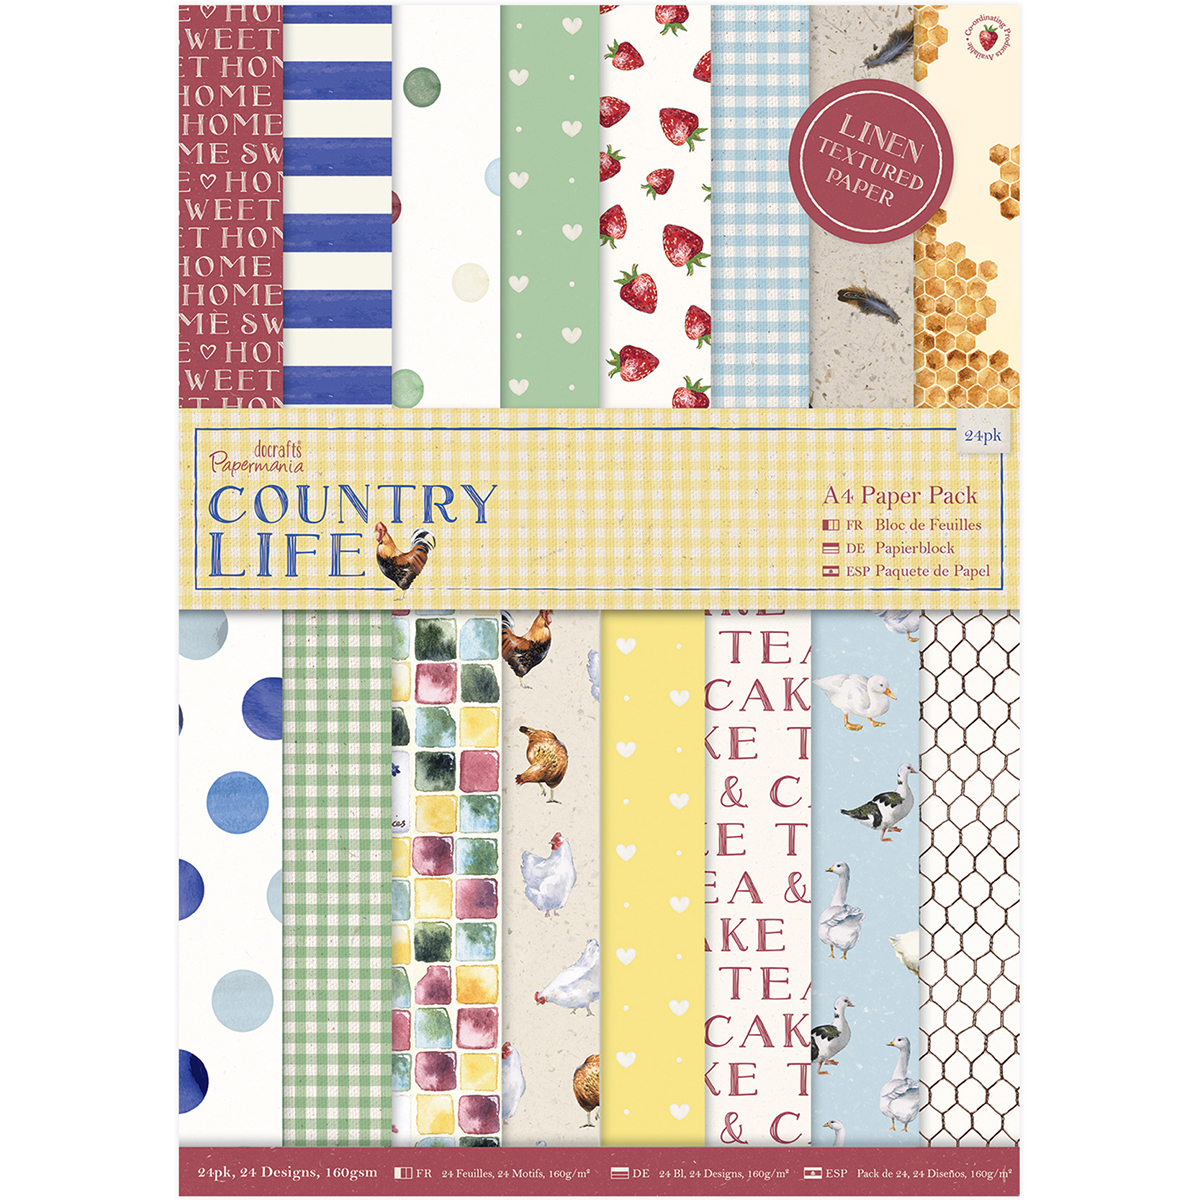 Papermania A4 Single-Sided Paper Pack 24/Pkg-Country Life, 24 Designs/1 Each